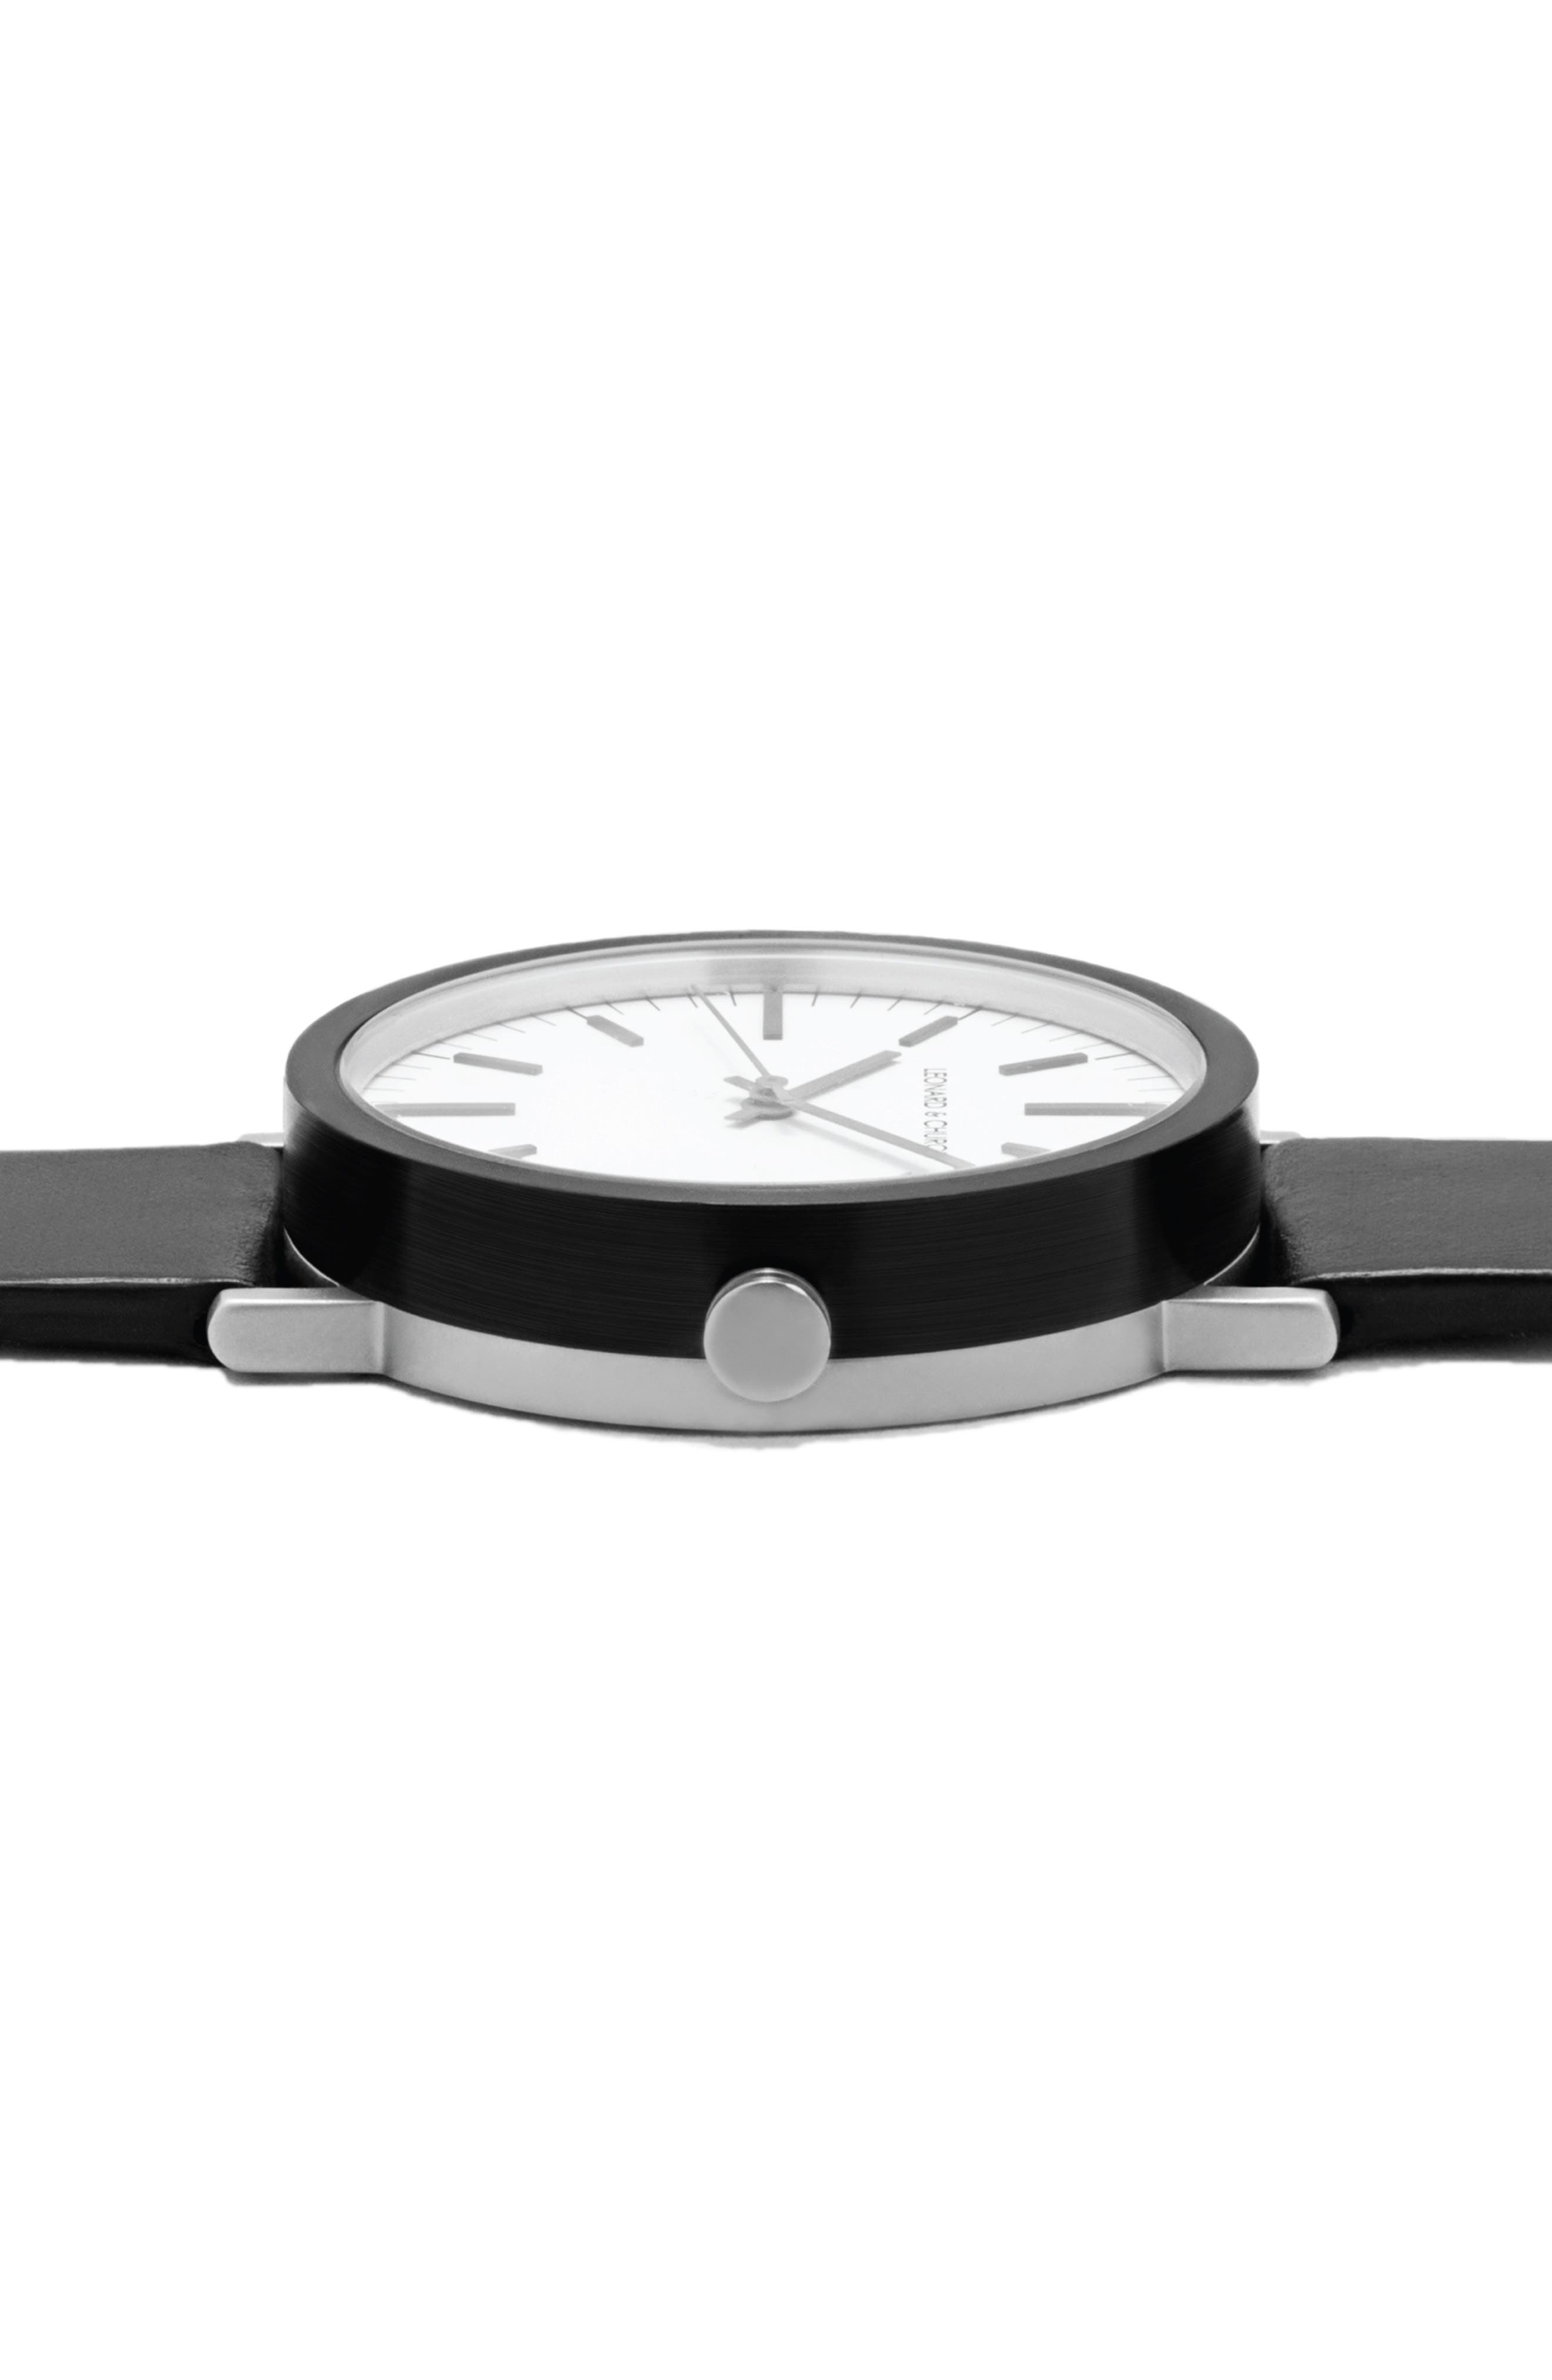 Leonard & Church Thompson Leather Strap Watch, 40mm,                             Alternate thumbnail 4, color,                             Black/ White/ Silver